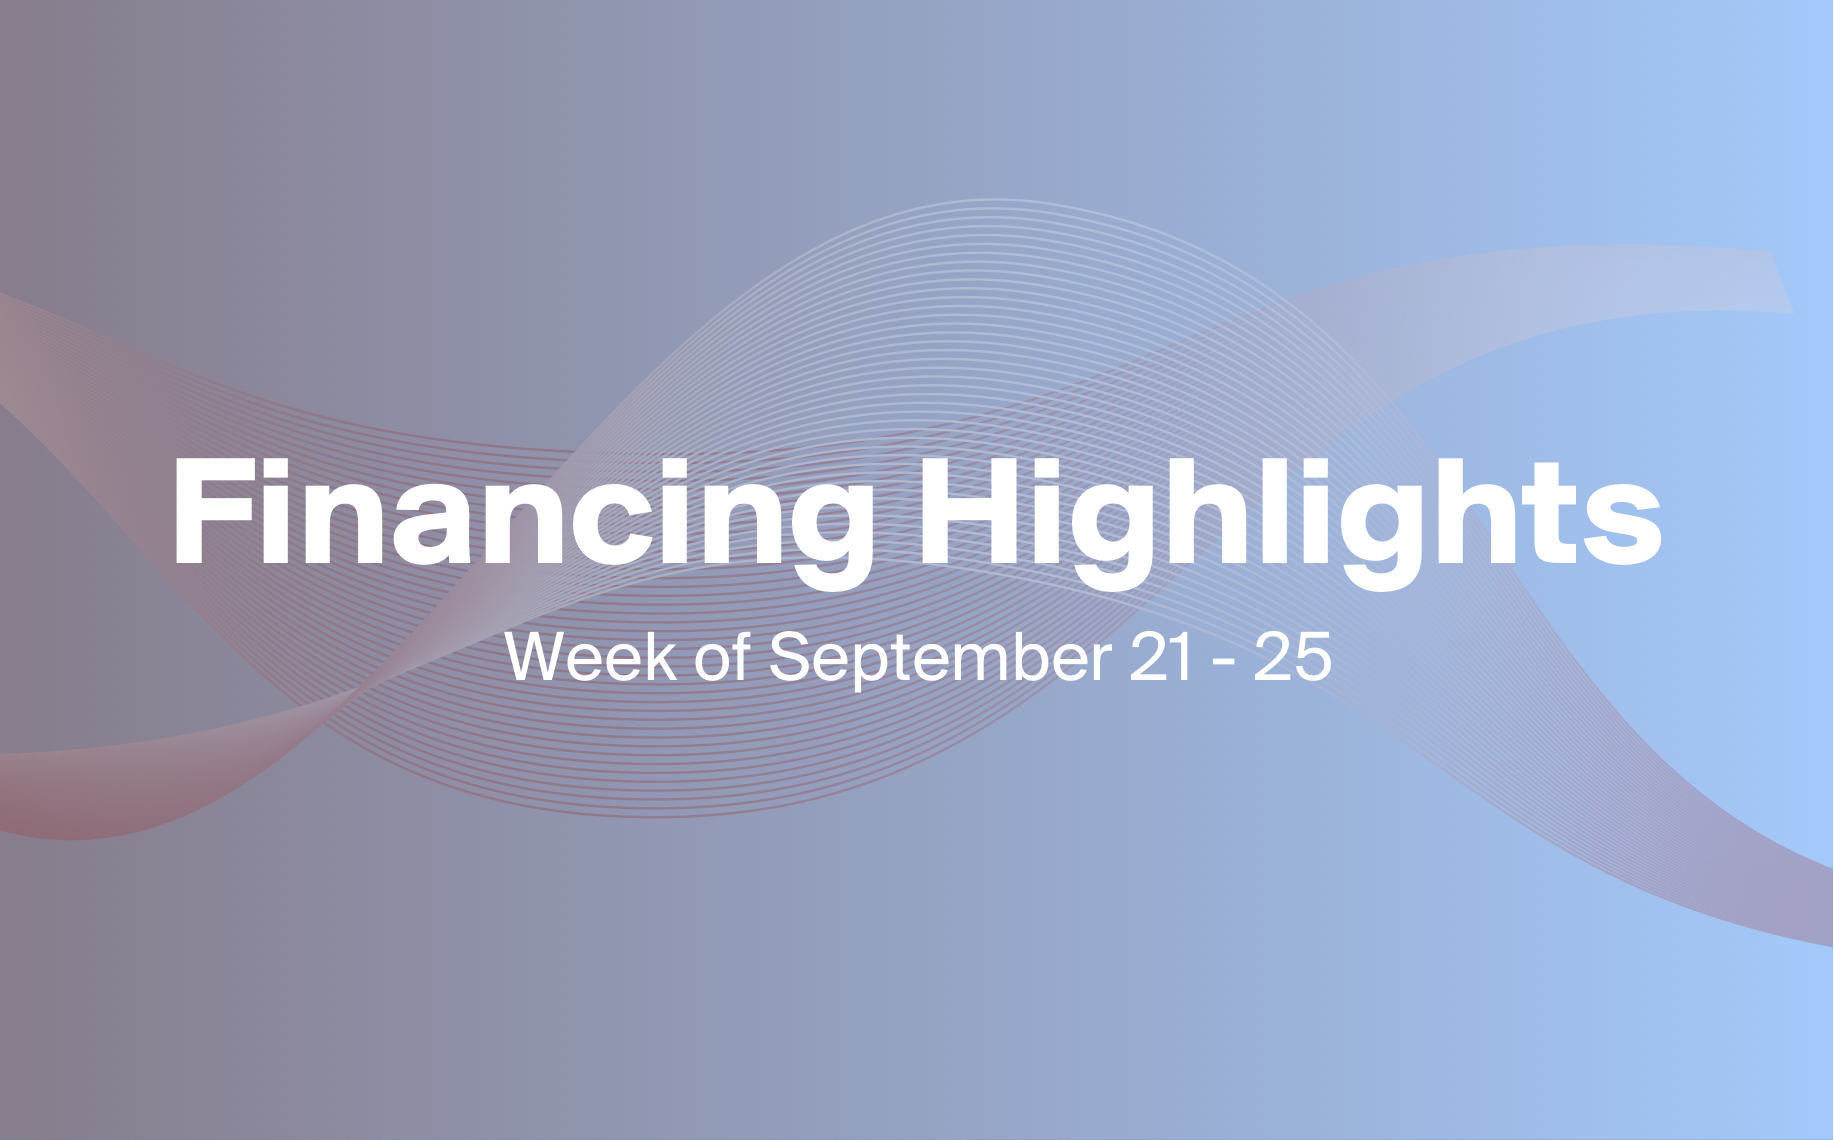 3 Financings You Need to Know About This Week (Sept. 21-25)